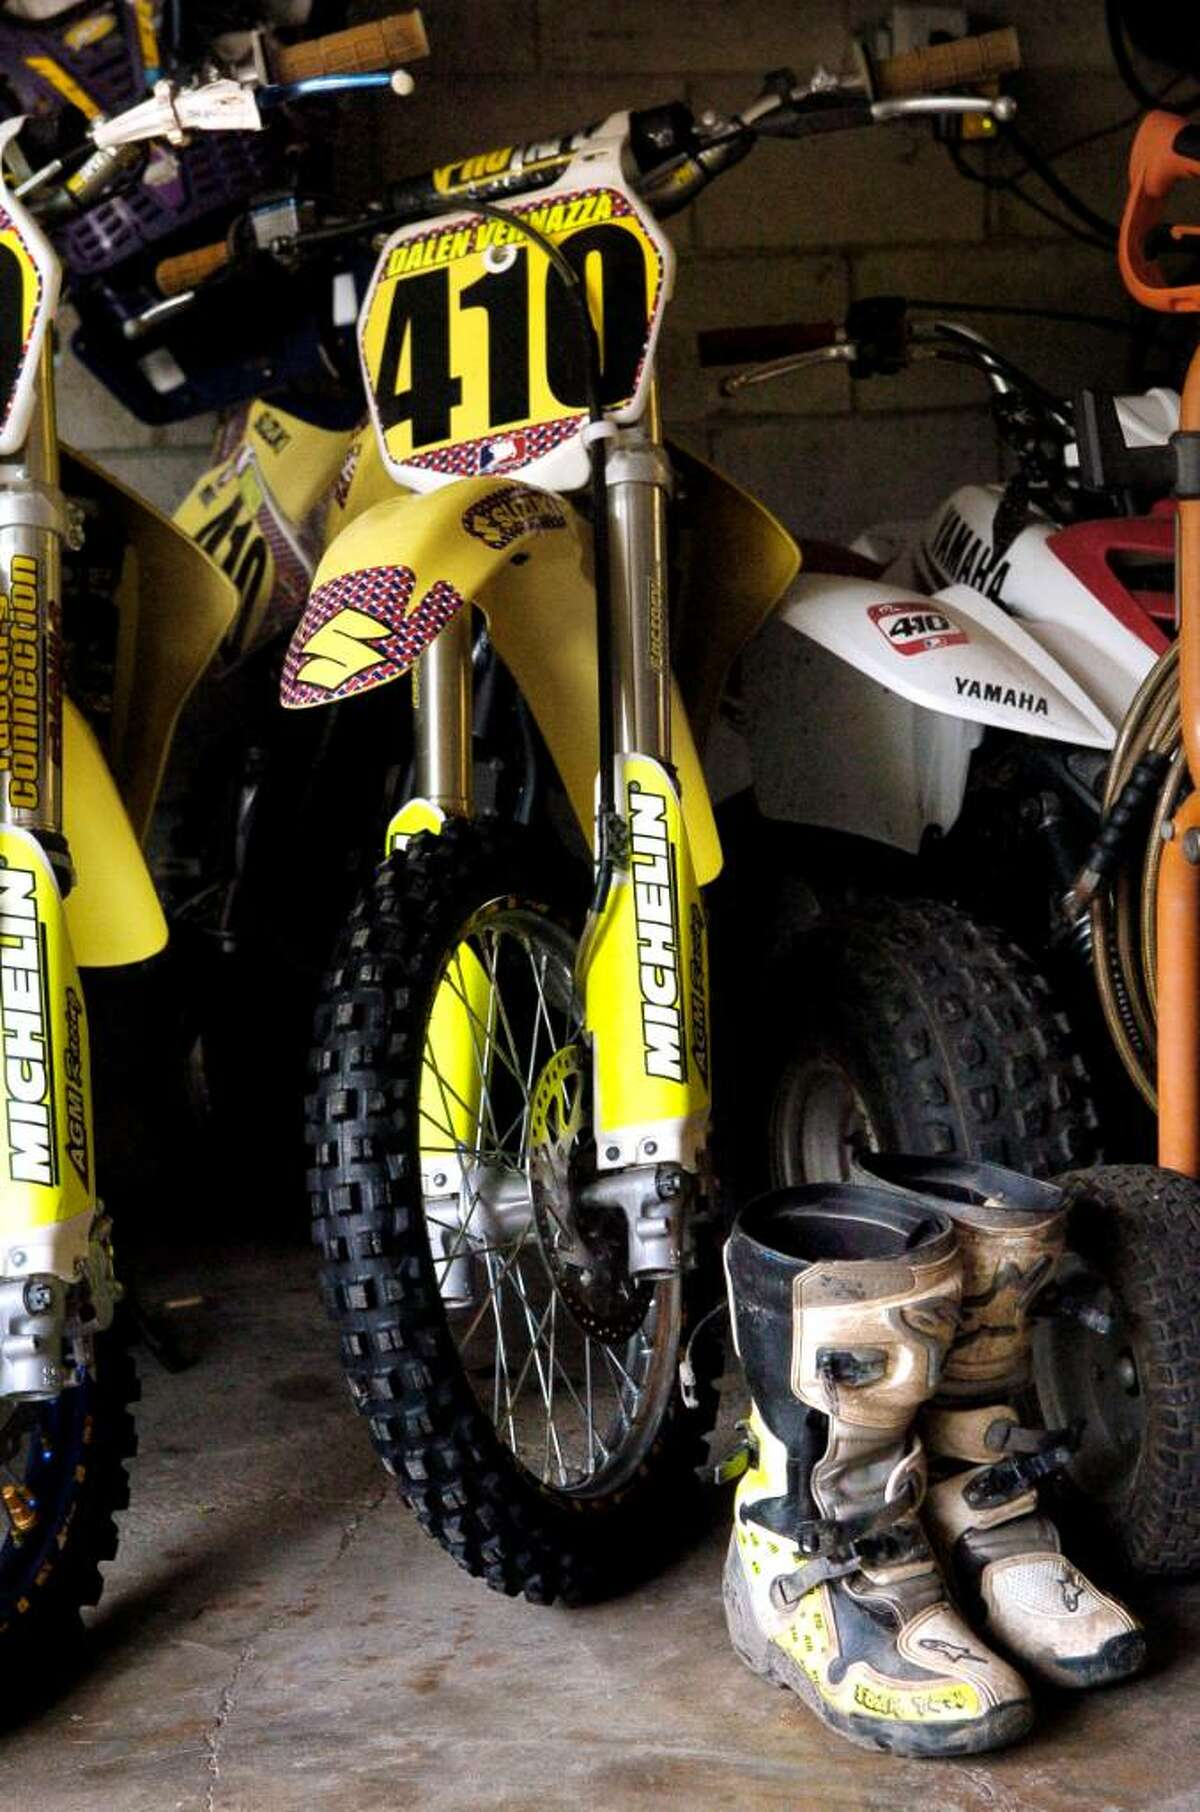 A couple of Dalen Vernazza's bikes in the garage of his Thornridge Rd home in Stamford, Conn. Thursday August 5, 2010.